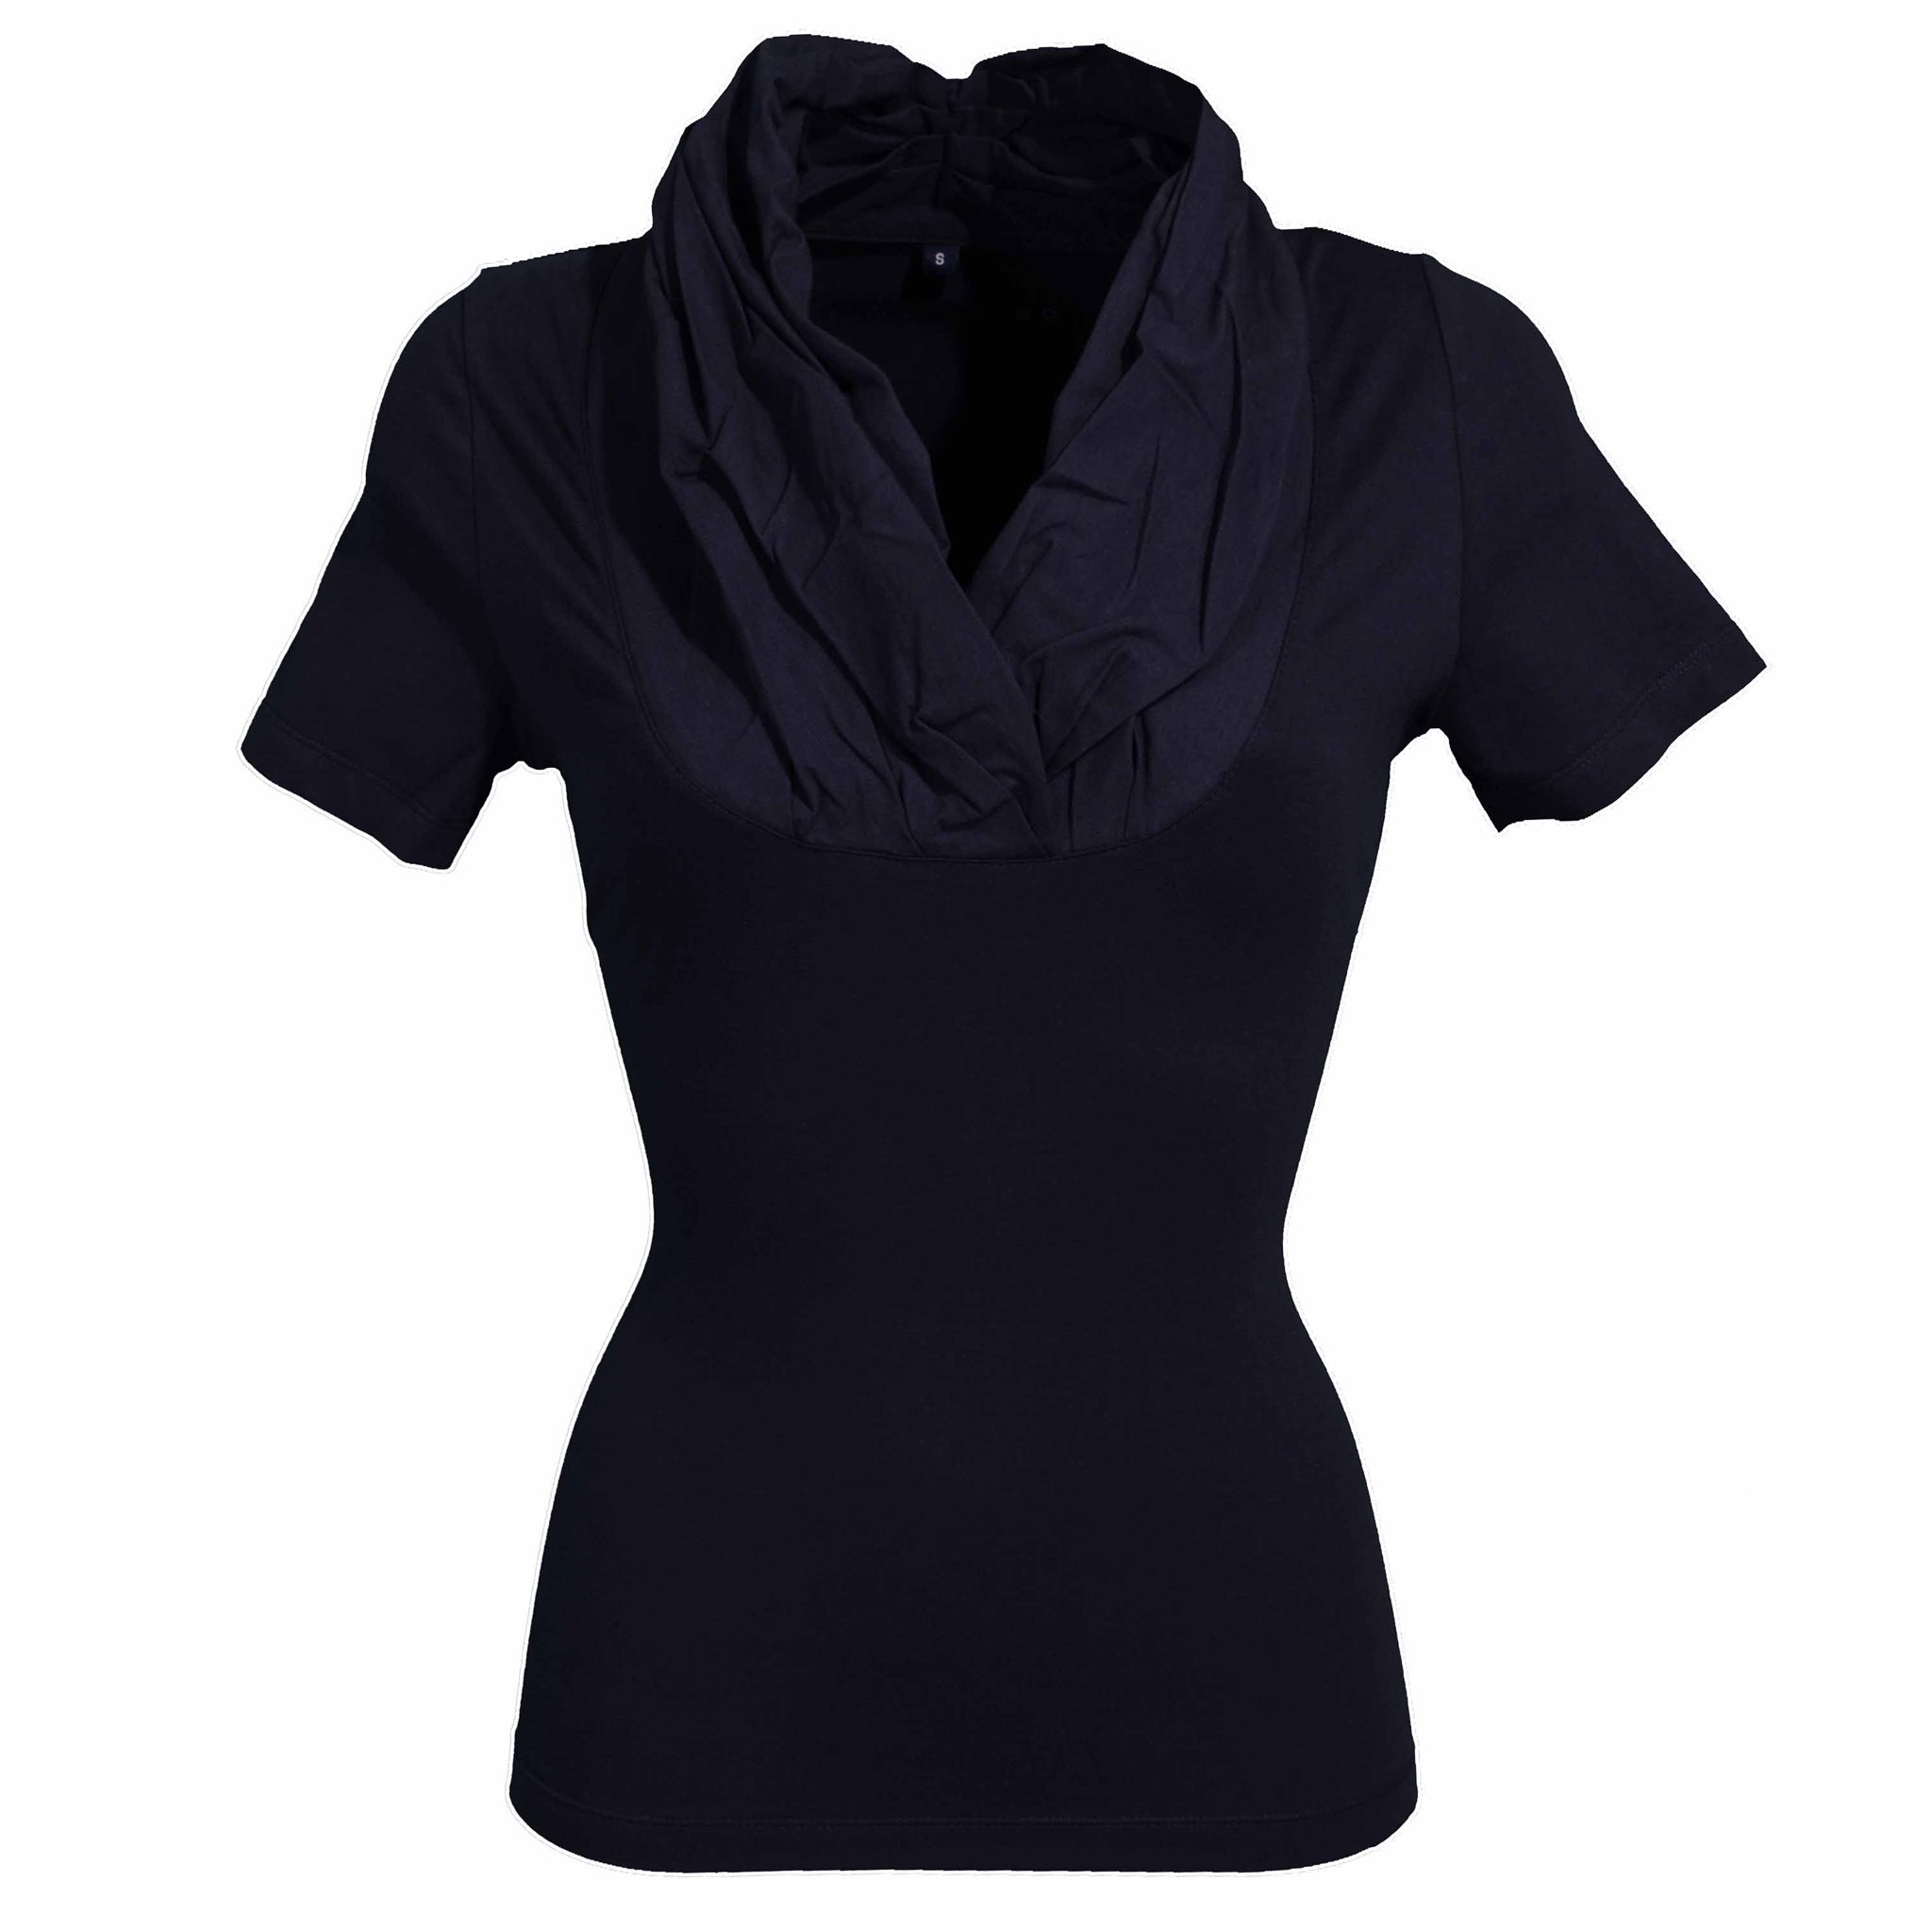 TOP NAVY SUSSKIND